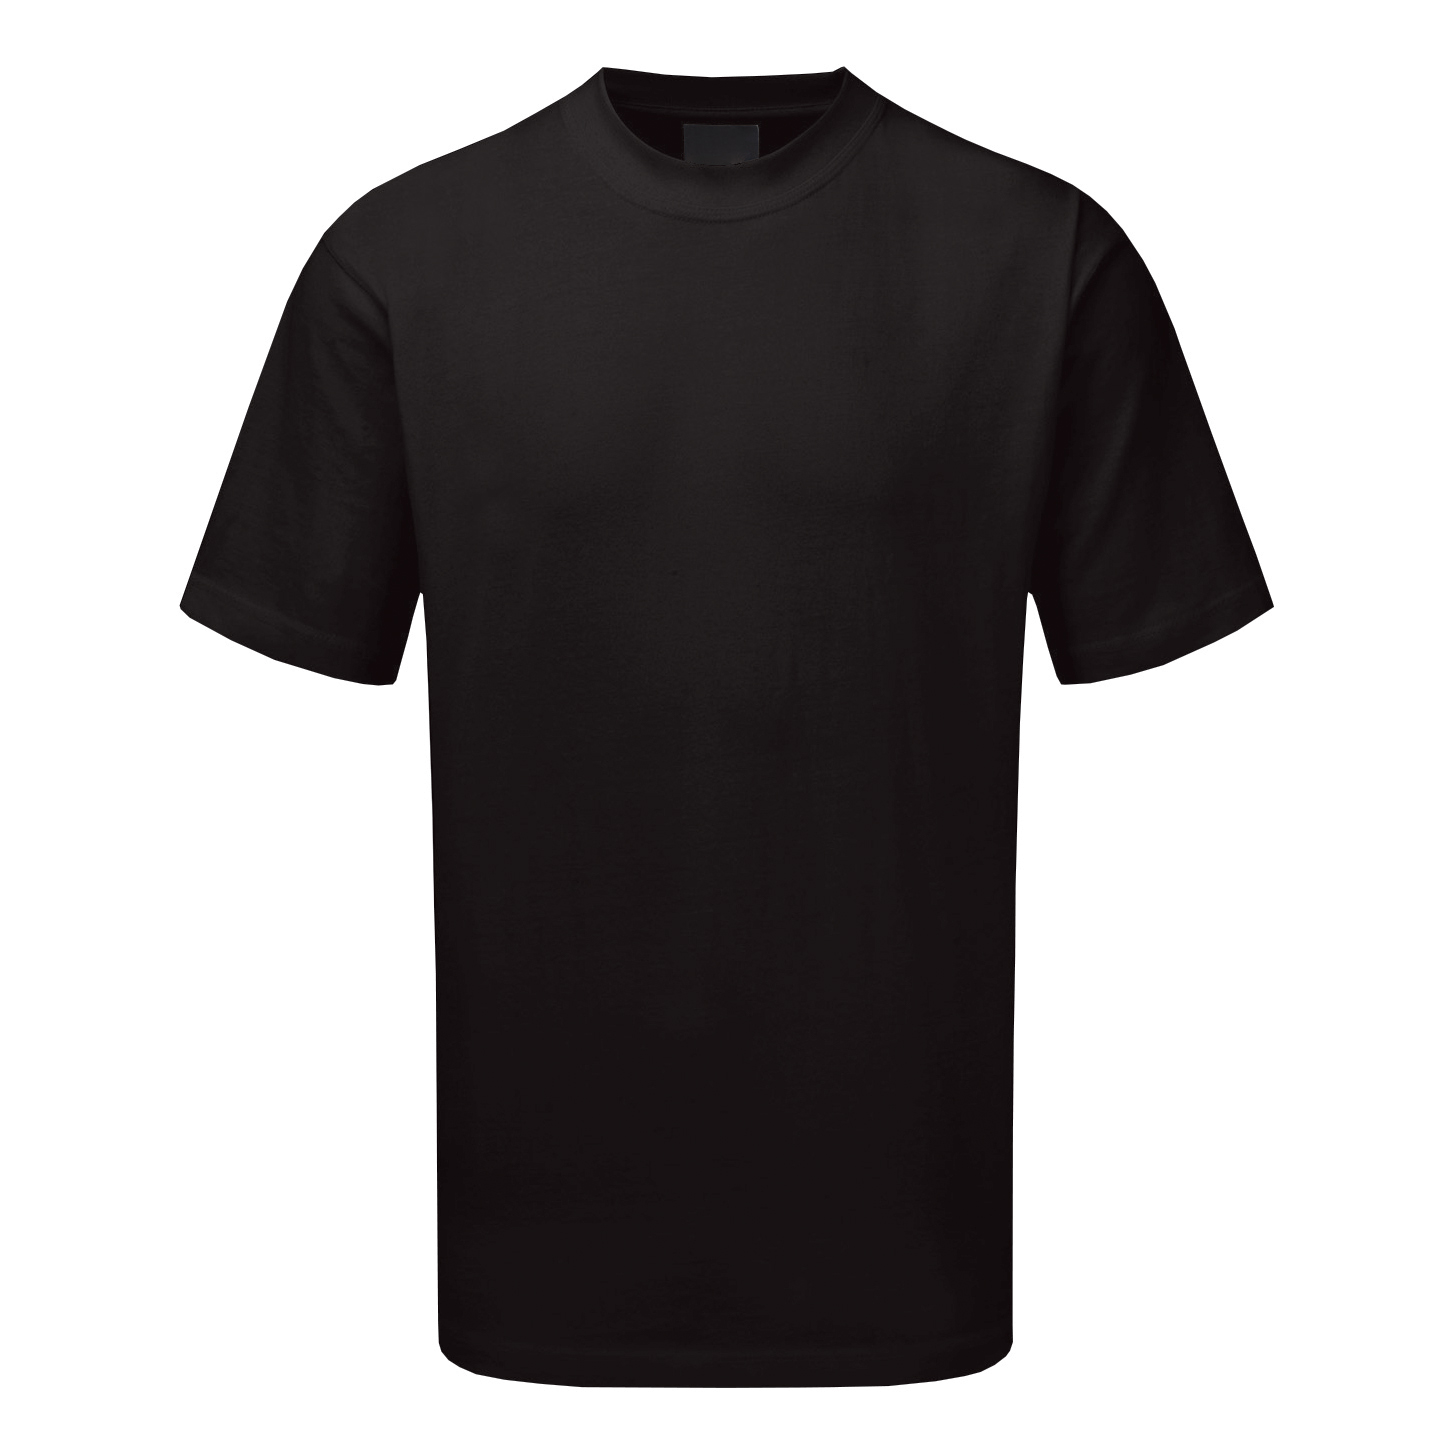 Premium T-Shirt Polycotton Triple Stitched Size 4XL Black Ref CLCTSHWBL4XL *Approx 3 Day Leadtime*